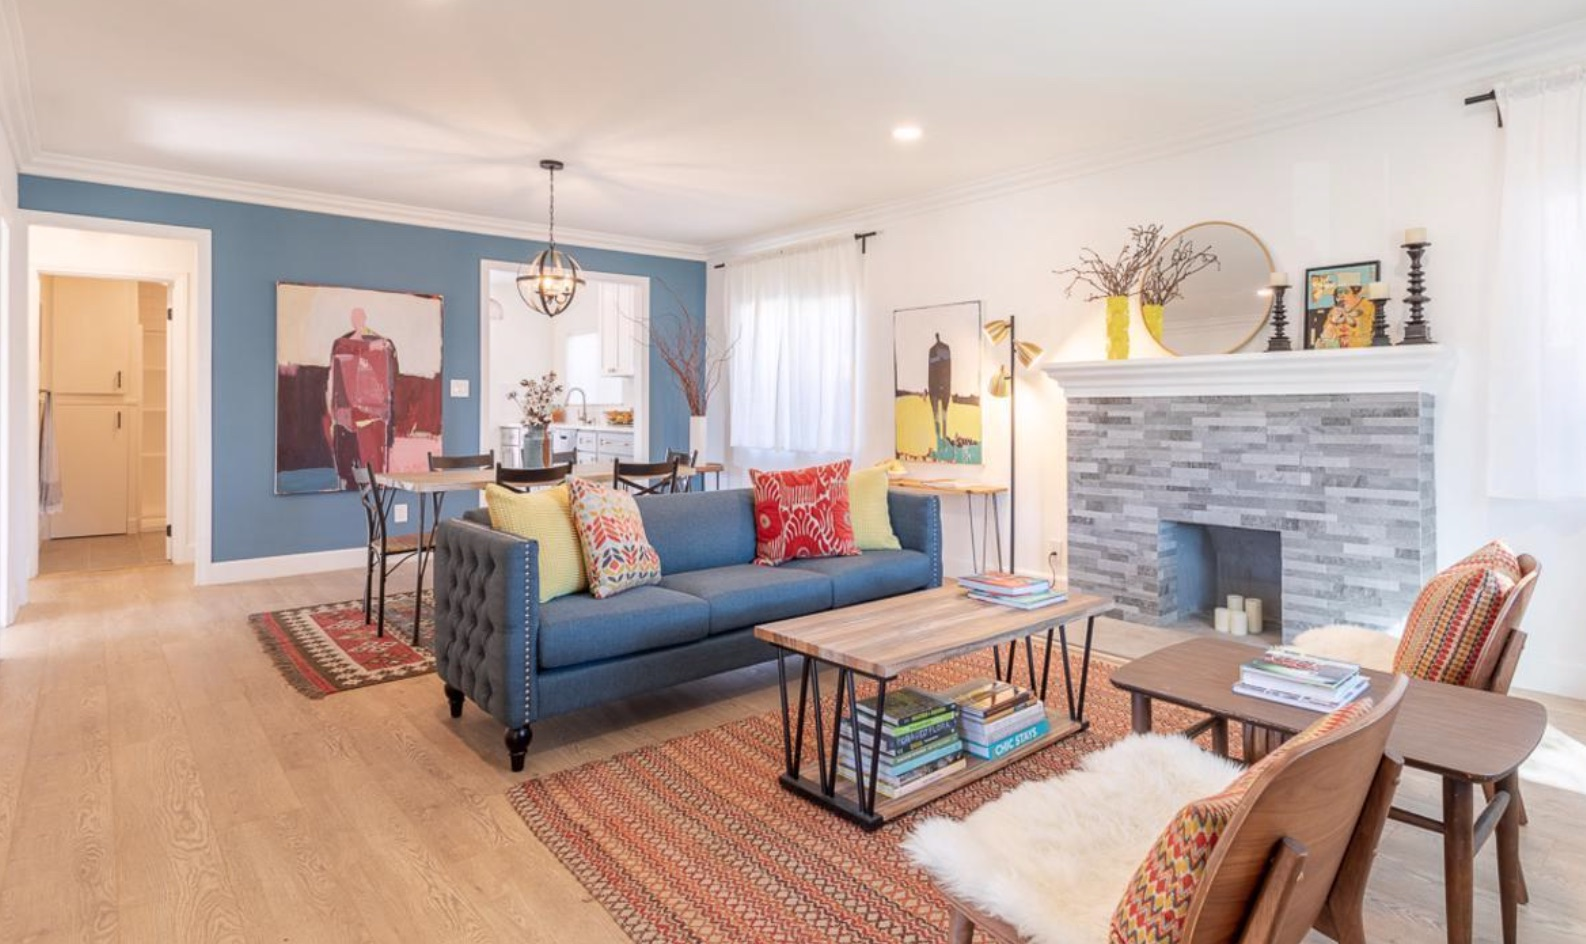 601 San Pascual Los Angeles 90042 - Sold Price $800,000